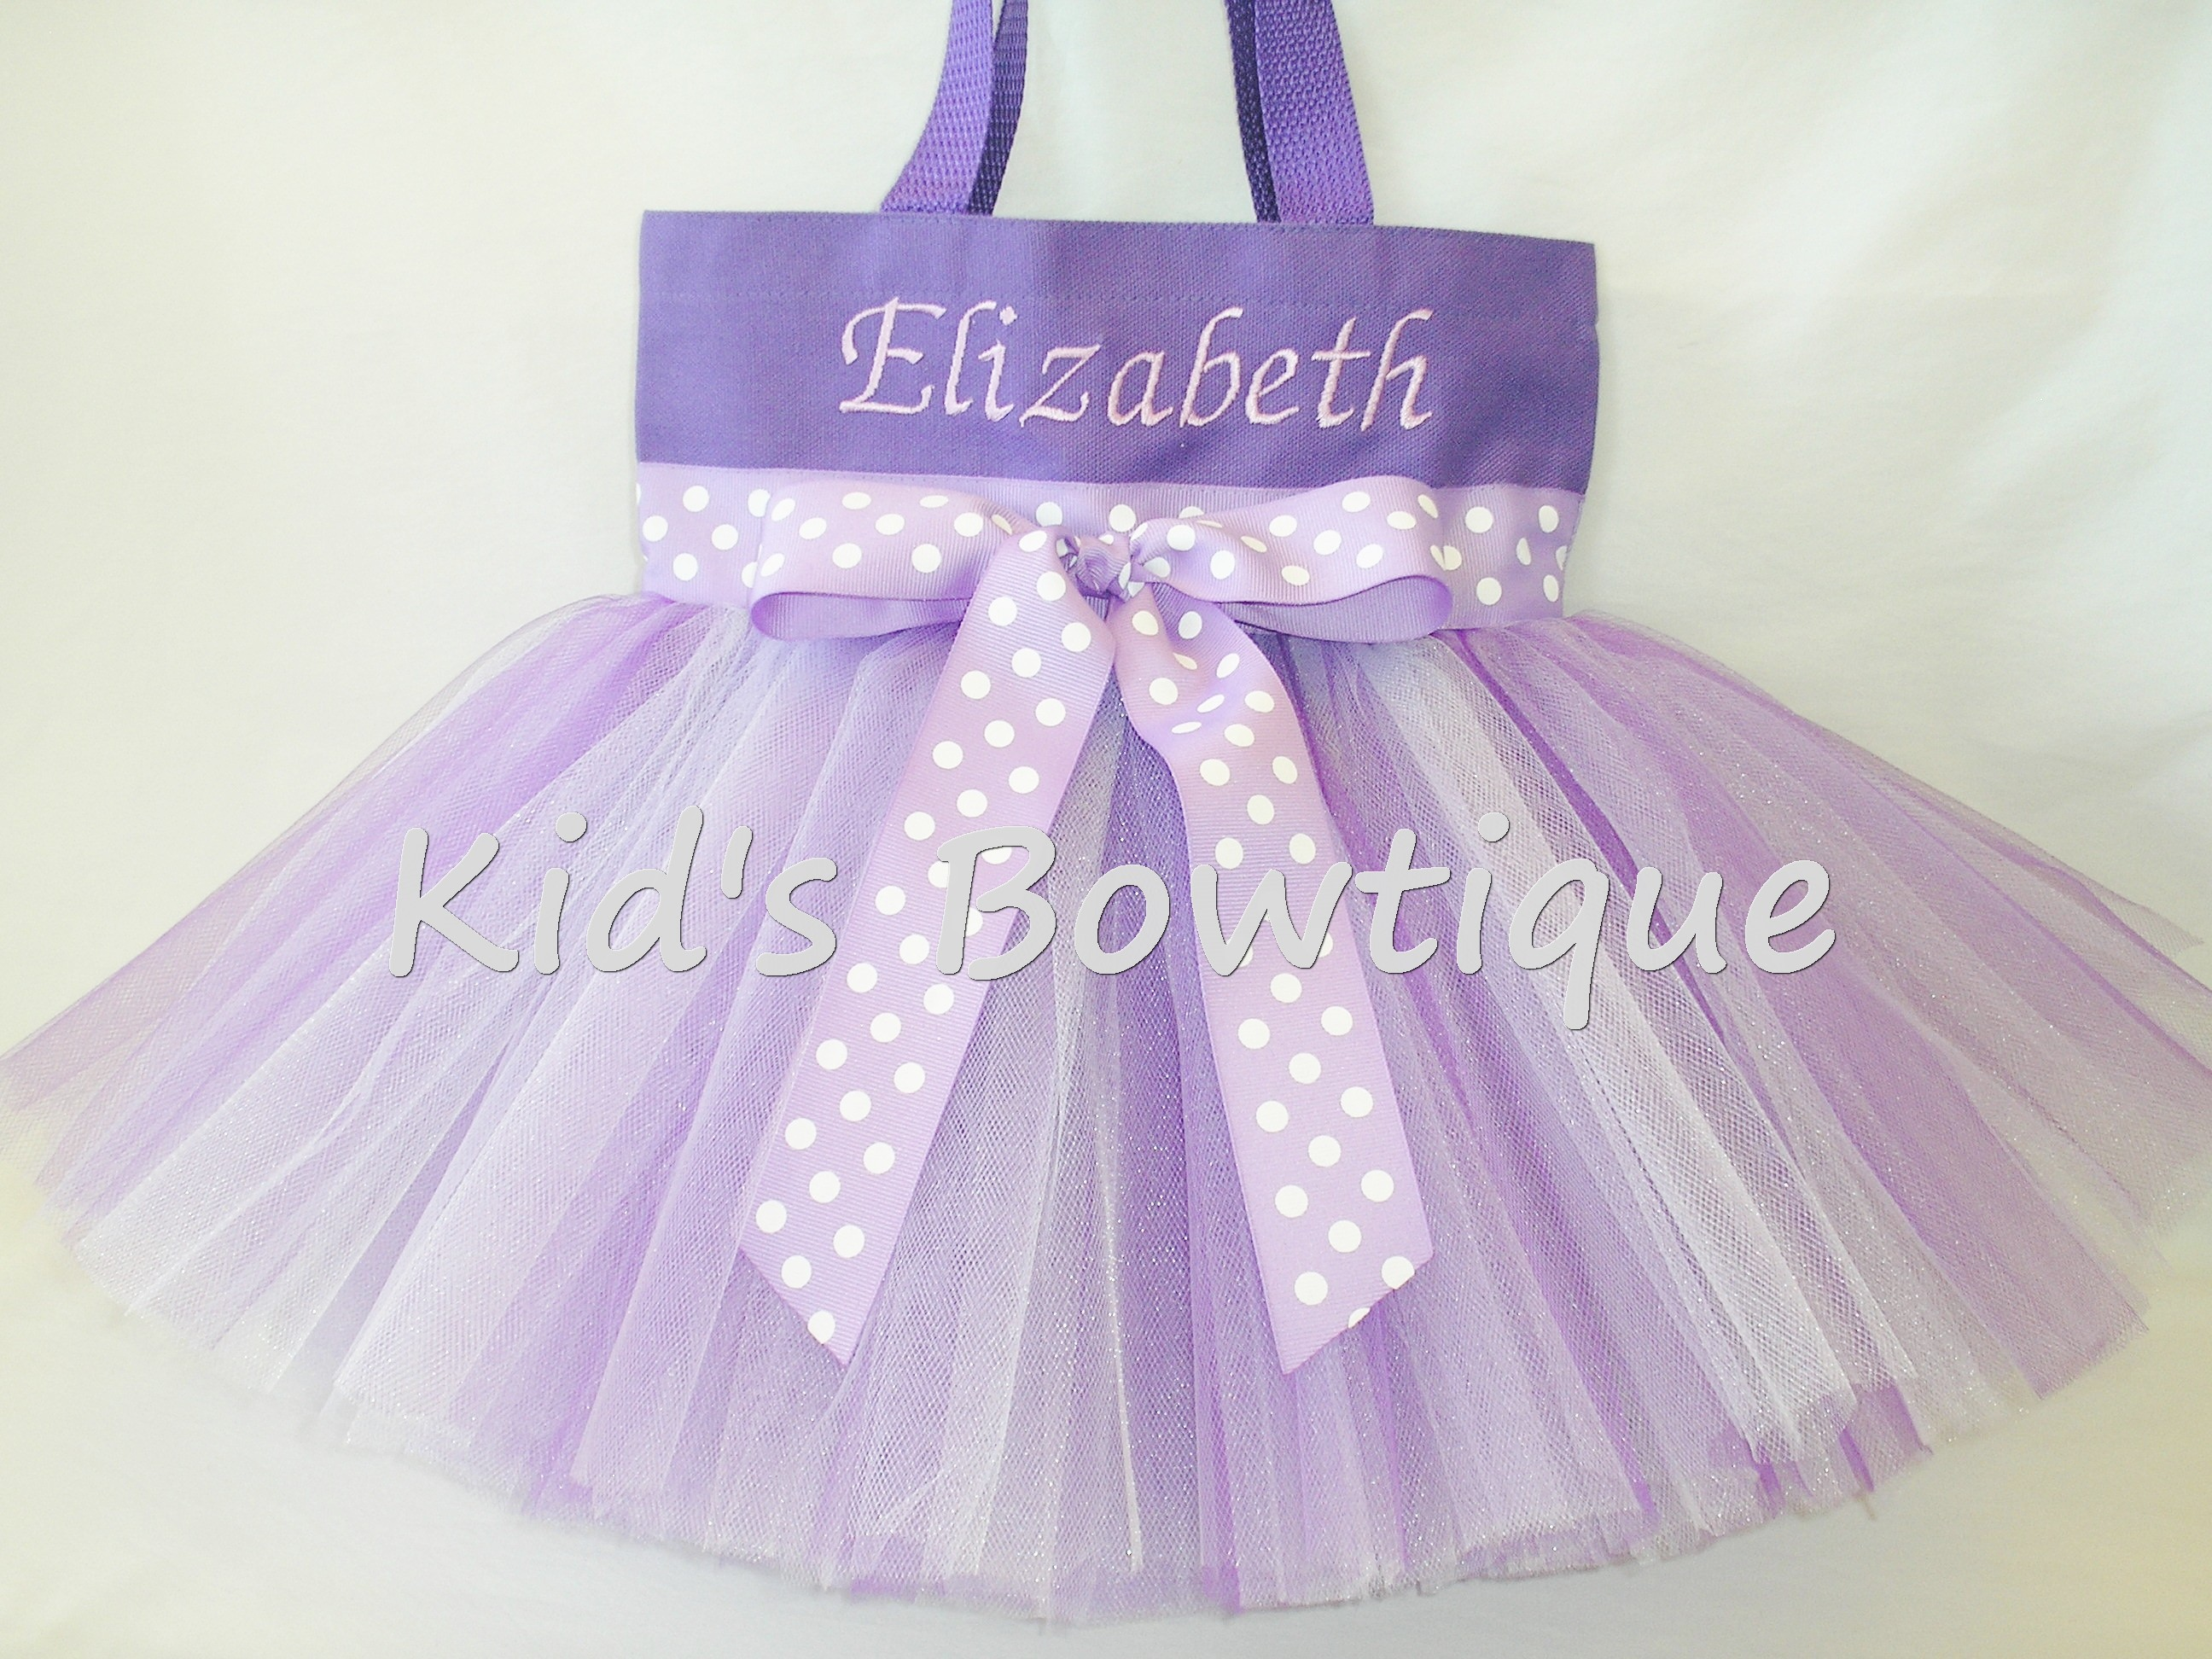 Monogrammed Tutu Tote Bag - Item ttb5 Purple with Polka Dots Ribbon